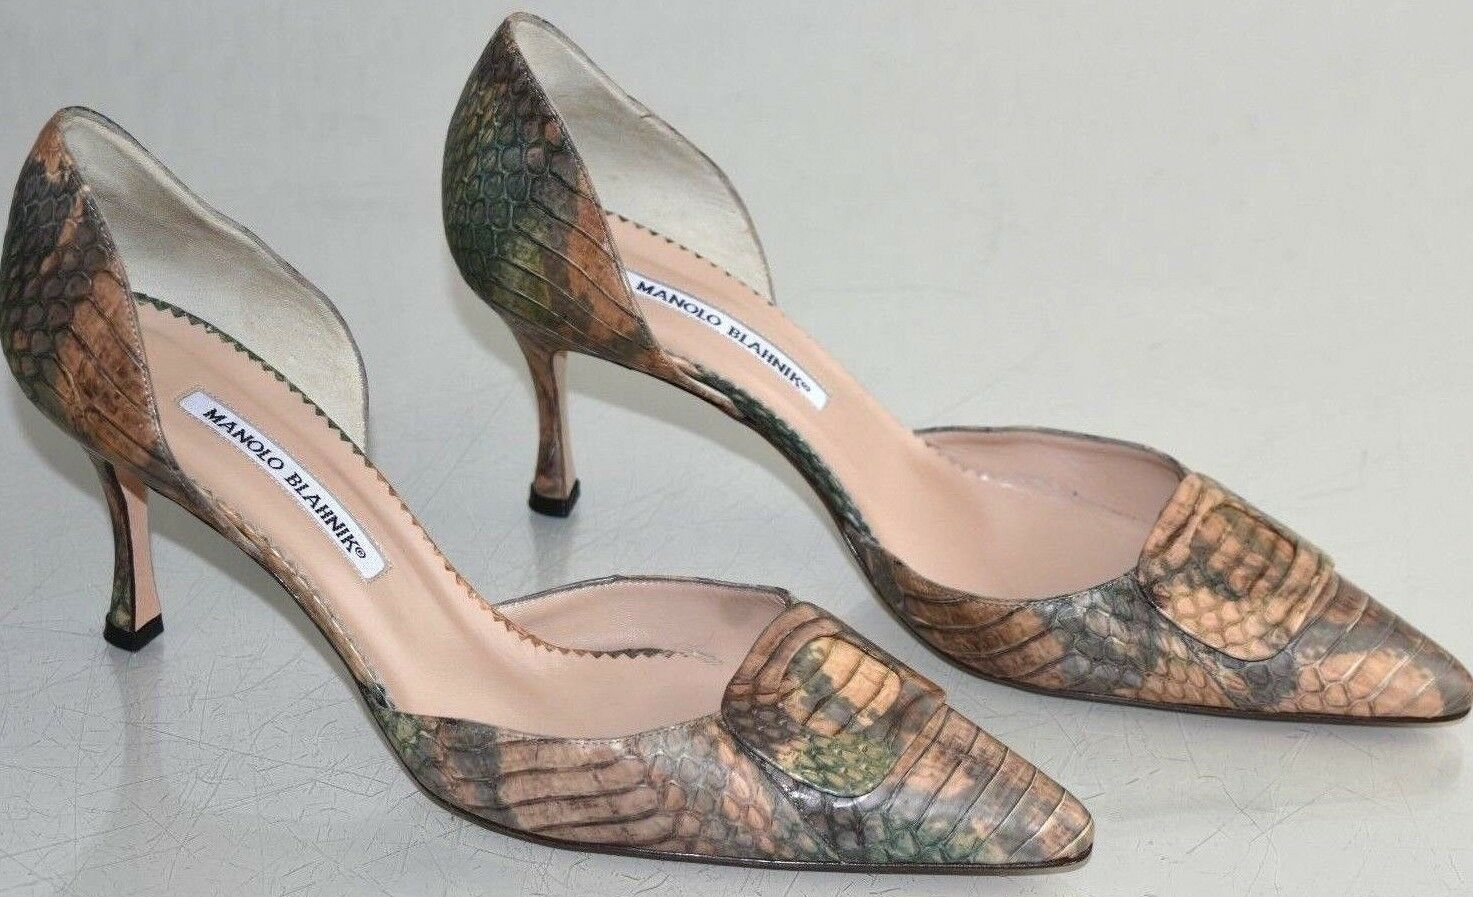 1290 NEW Manolo Blahnik EXOTIC PYTHON Pumps Dorsay Brown Green Taupe shoes 41.5